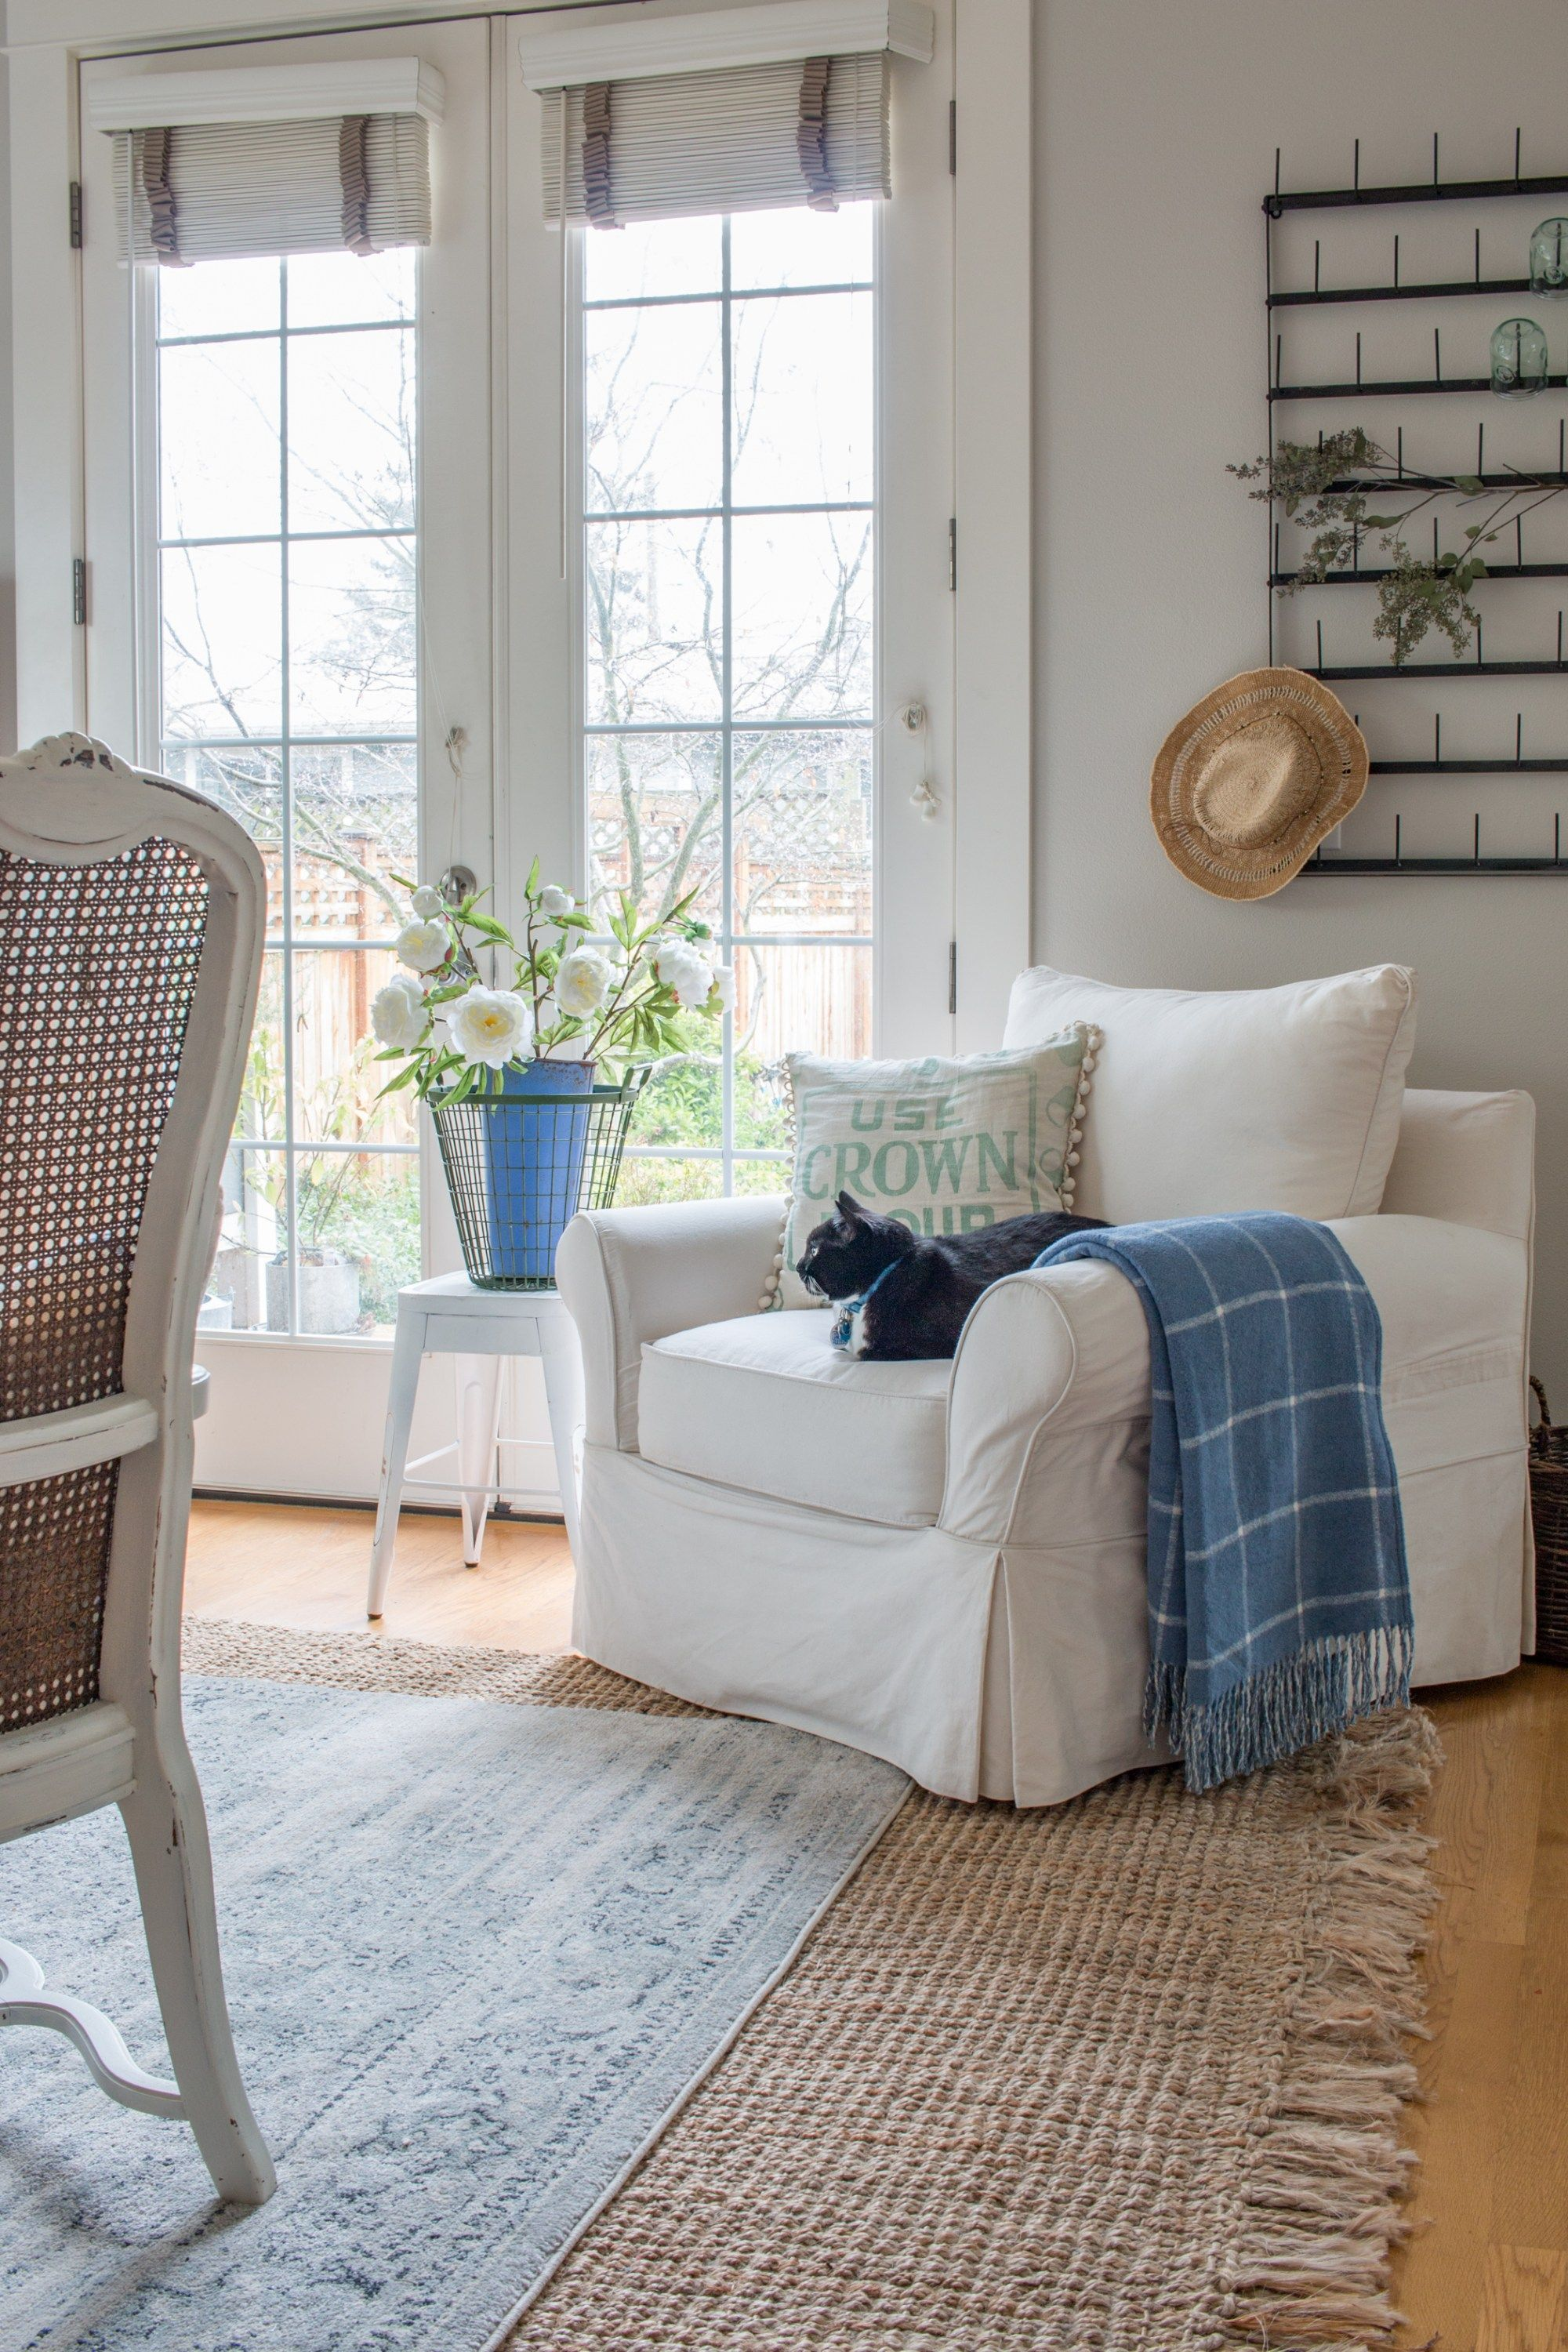 decor Styles Find Your - Decorating Trends and Finding Your ...